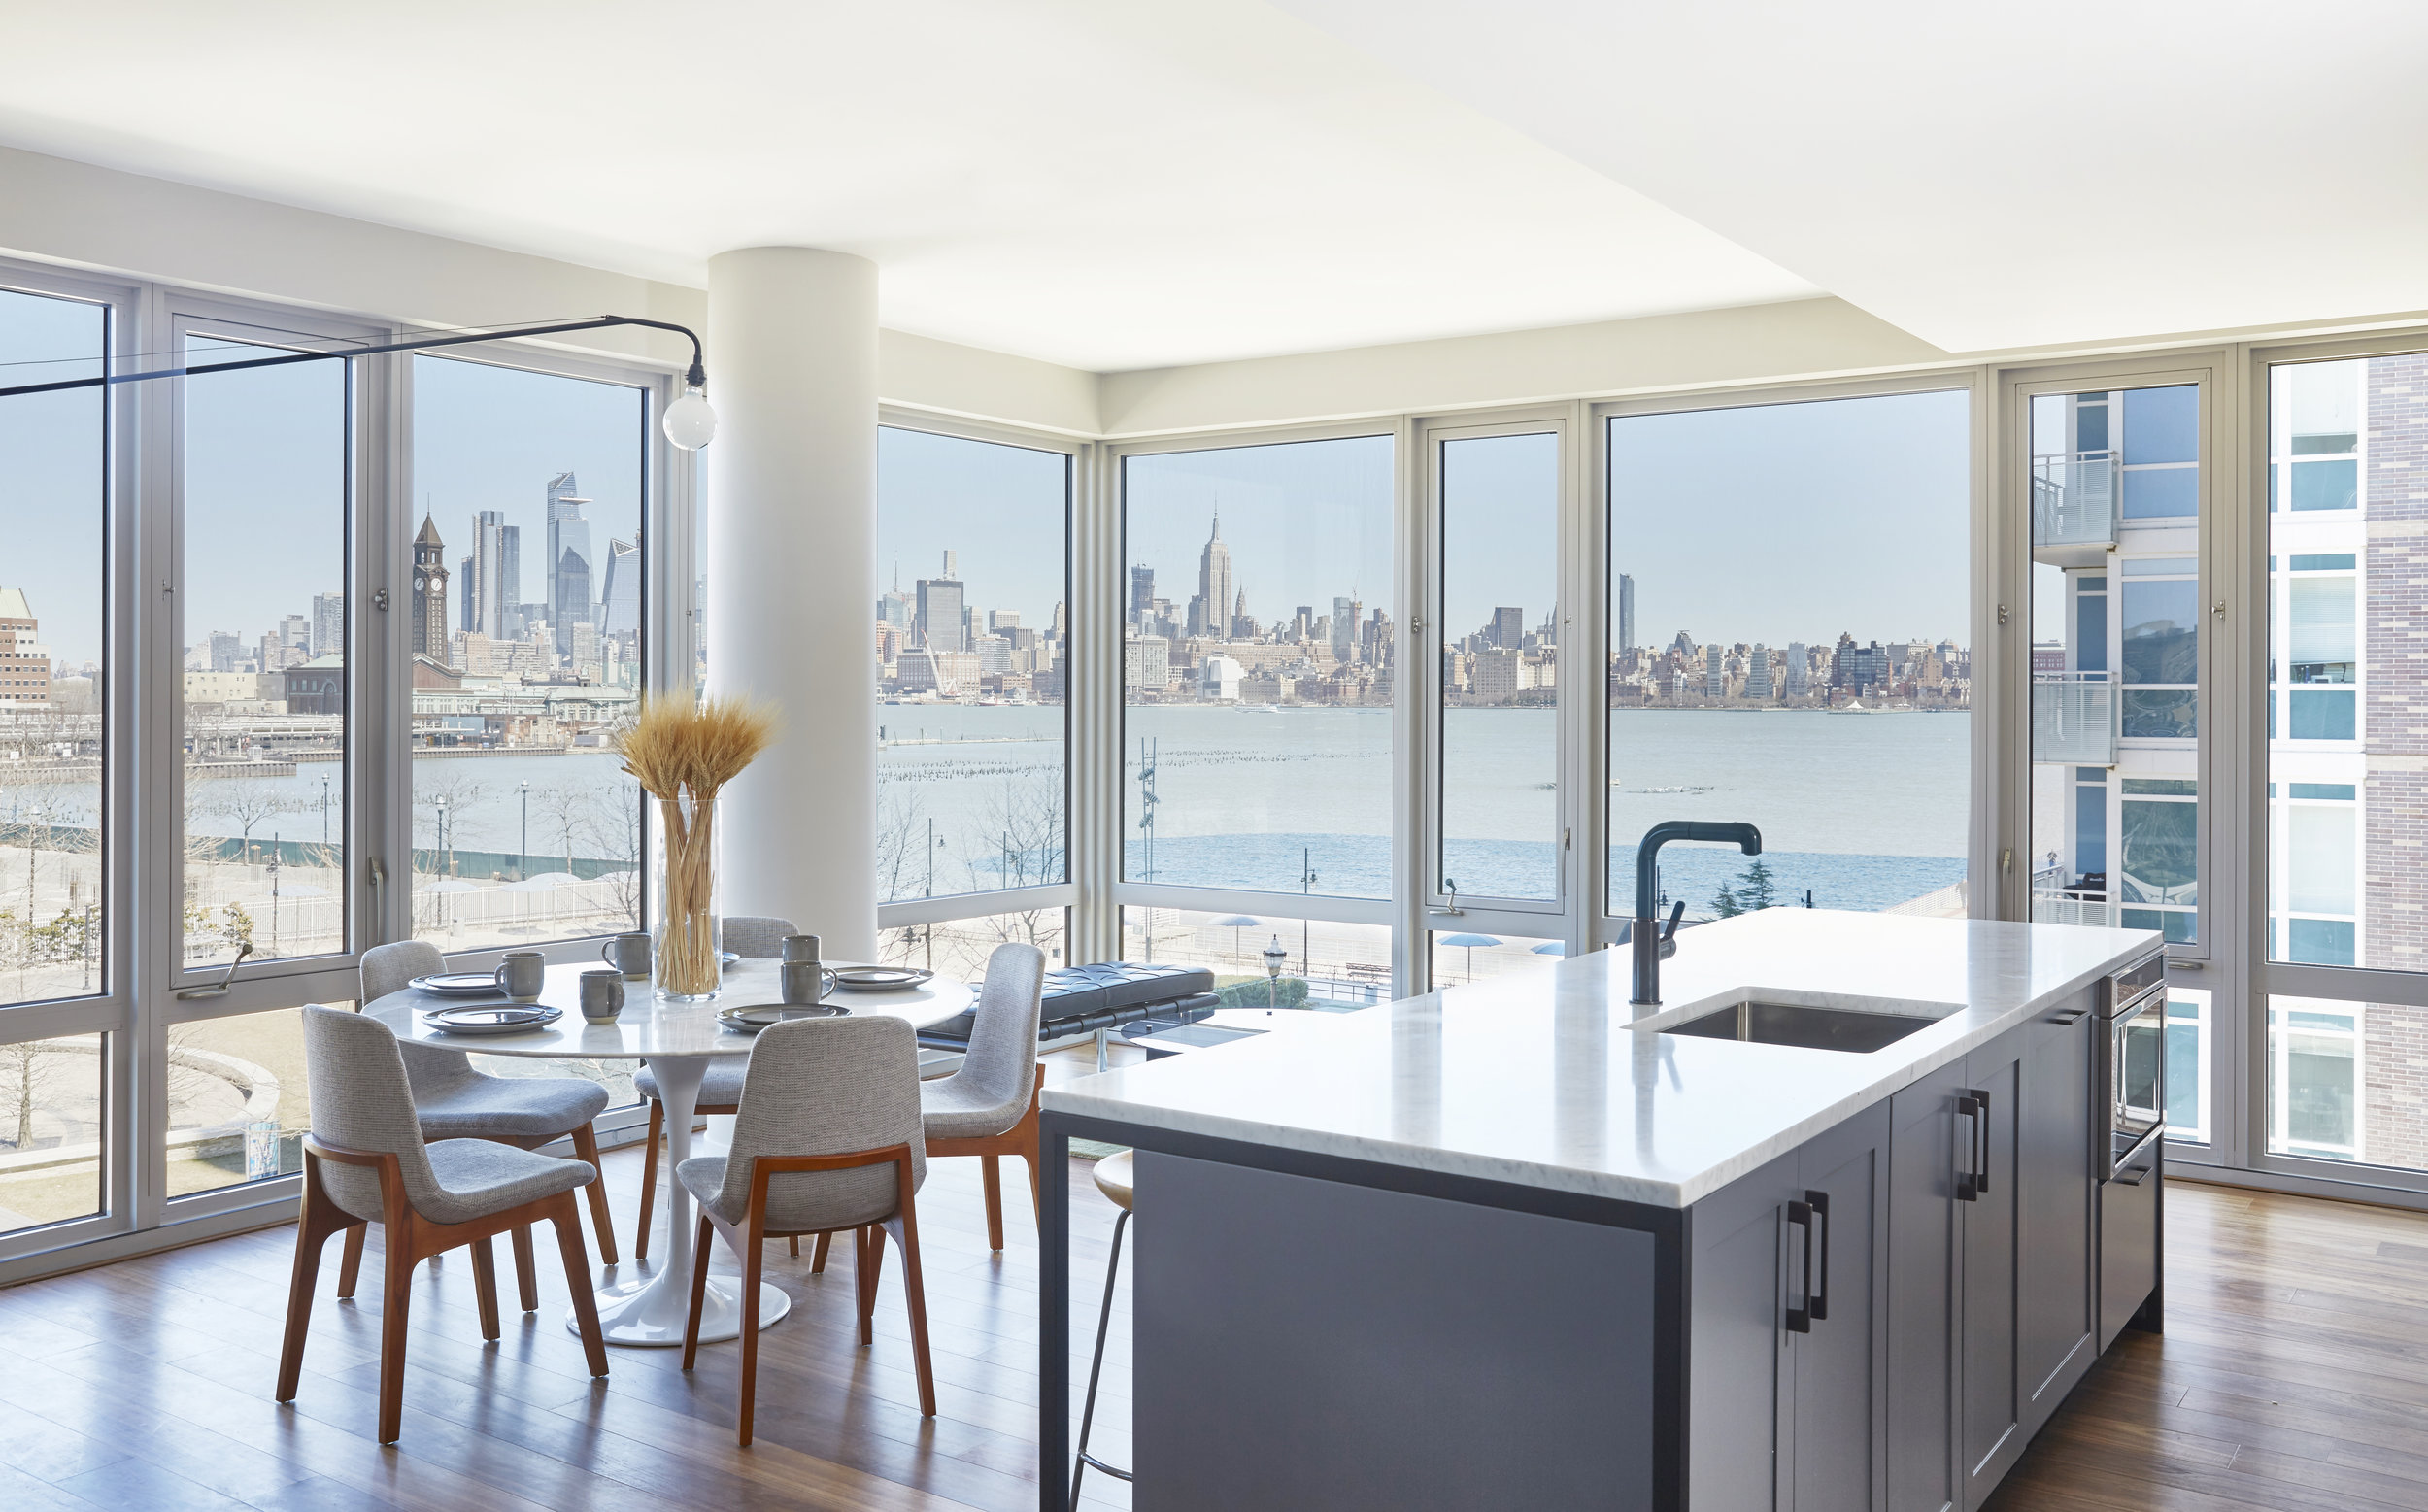 Shore House, Jersey City's Fastest-Selling New Development, Begins Closings At 70% Sold